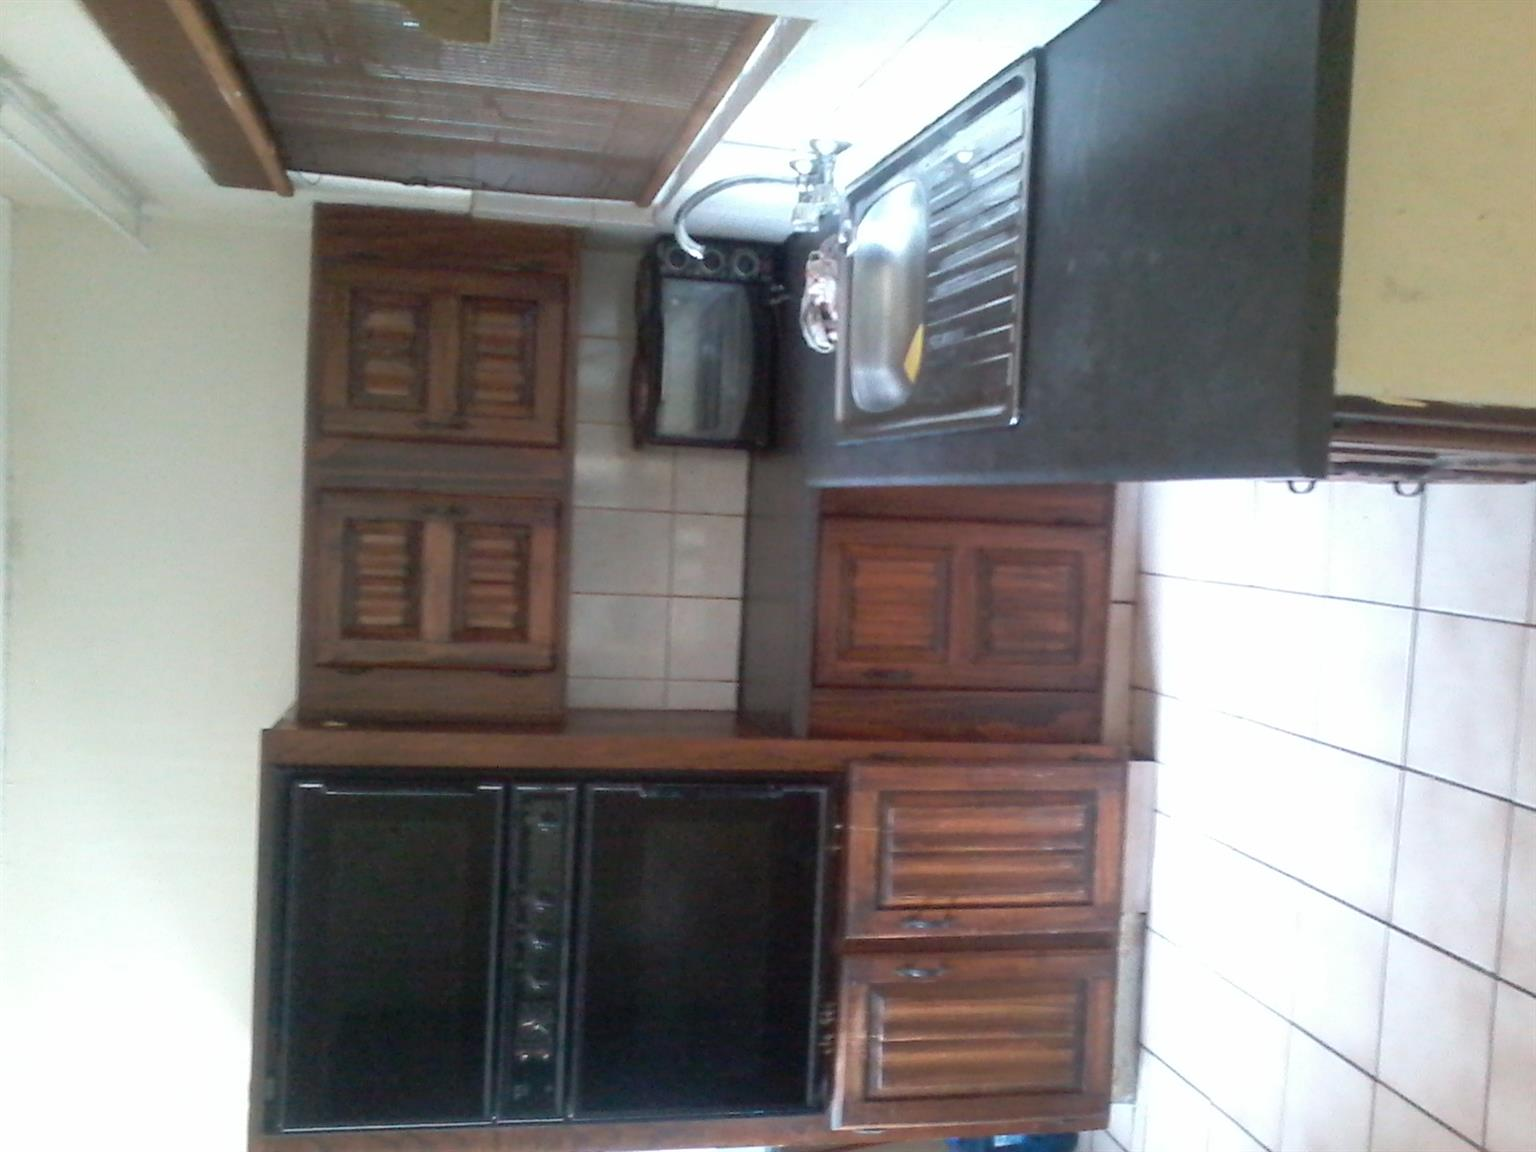 2 Bedroom Flat to let in Model Park, Witbank. Prepaid Electricity